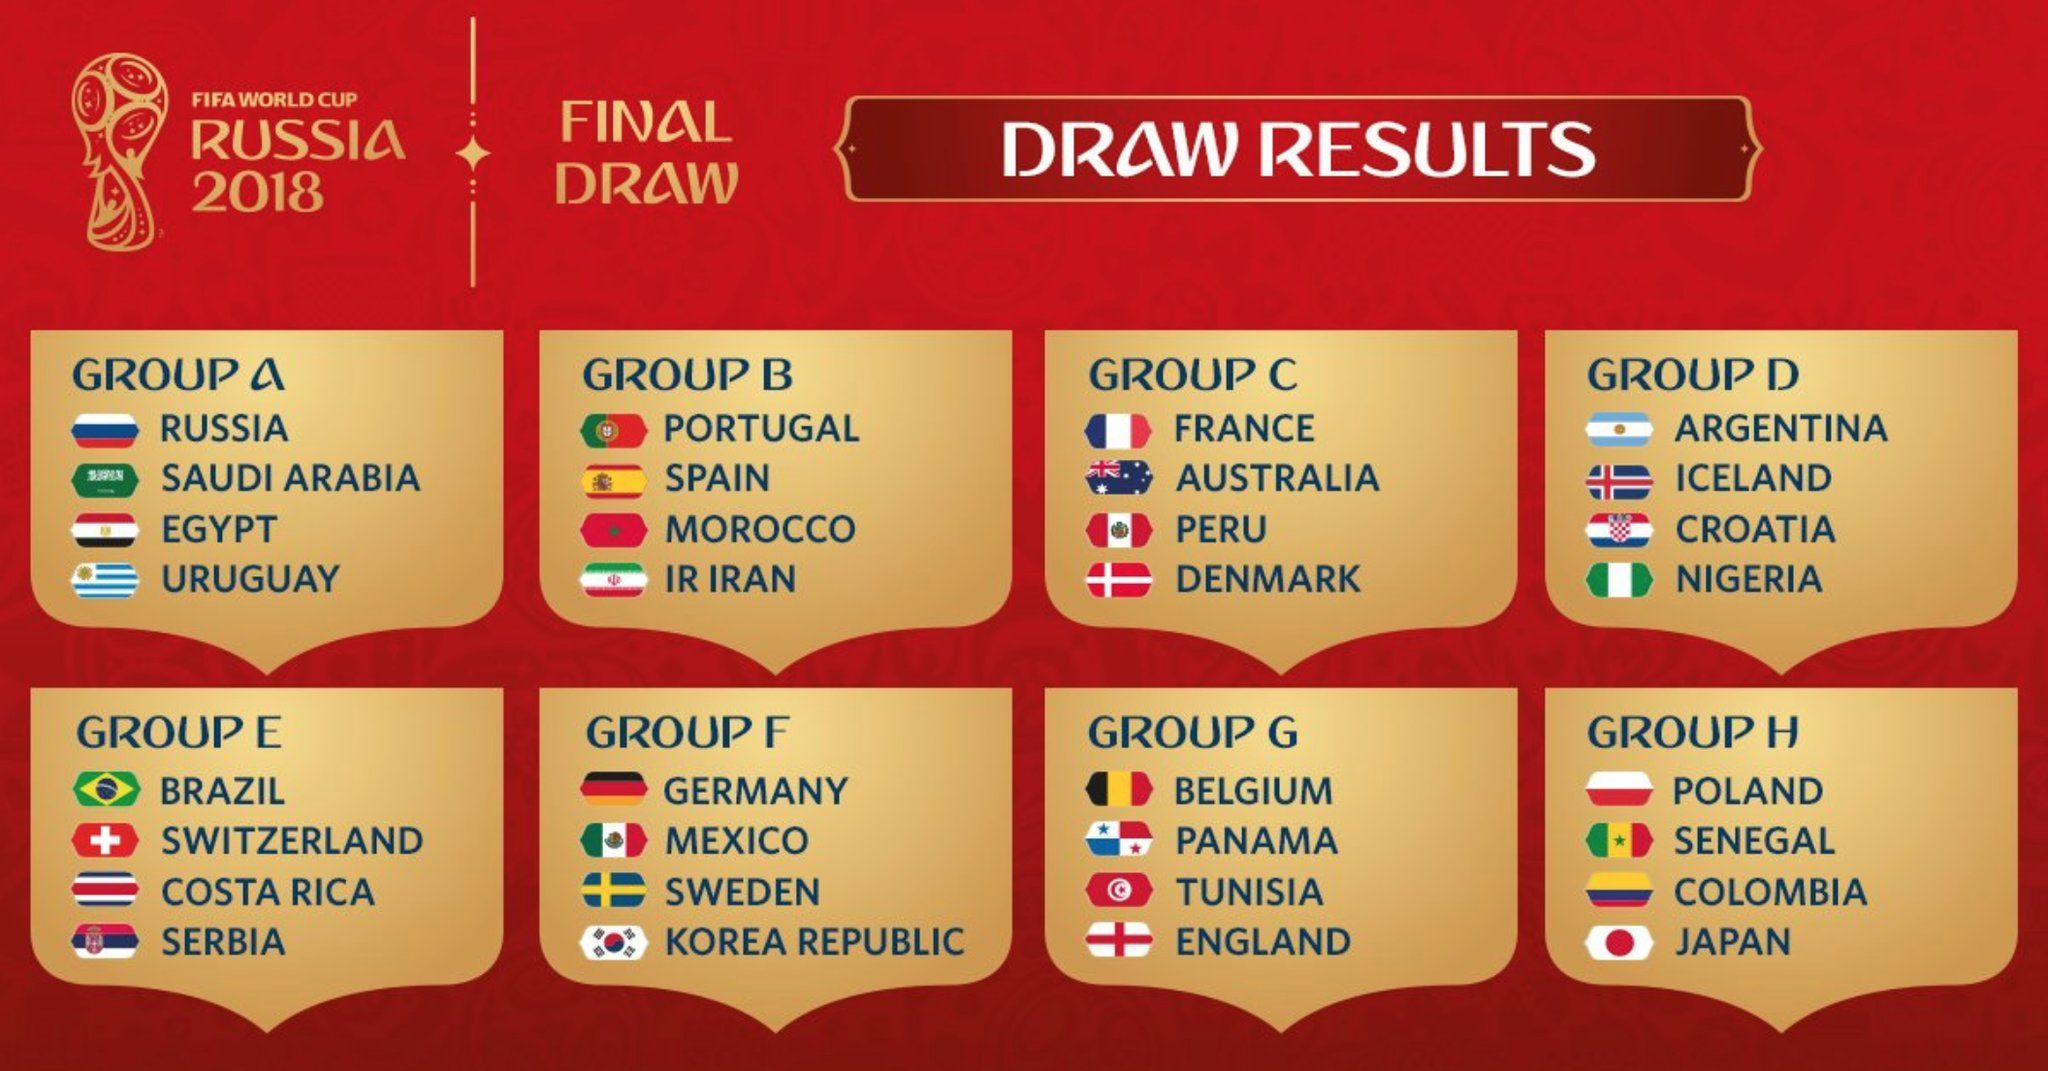 FIFA World Cup 2018 Draw Results